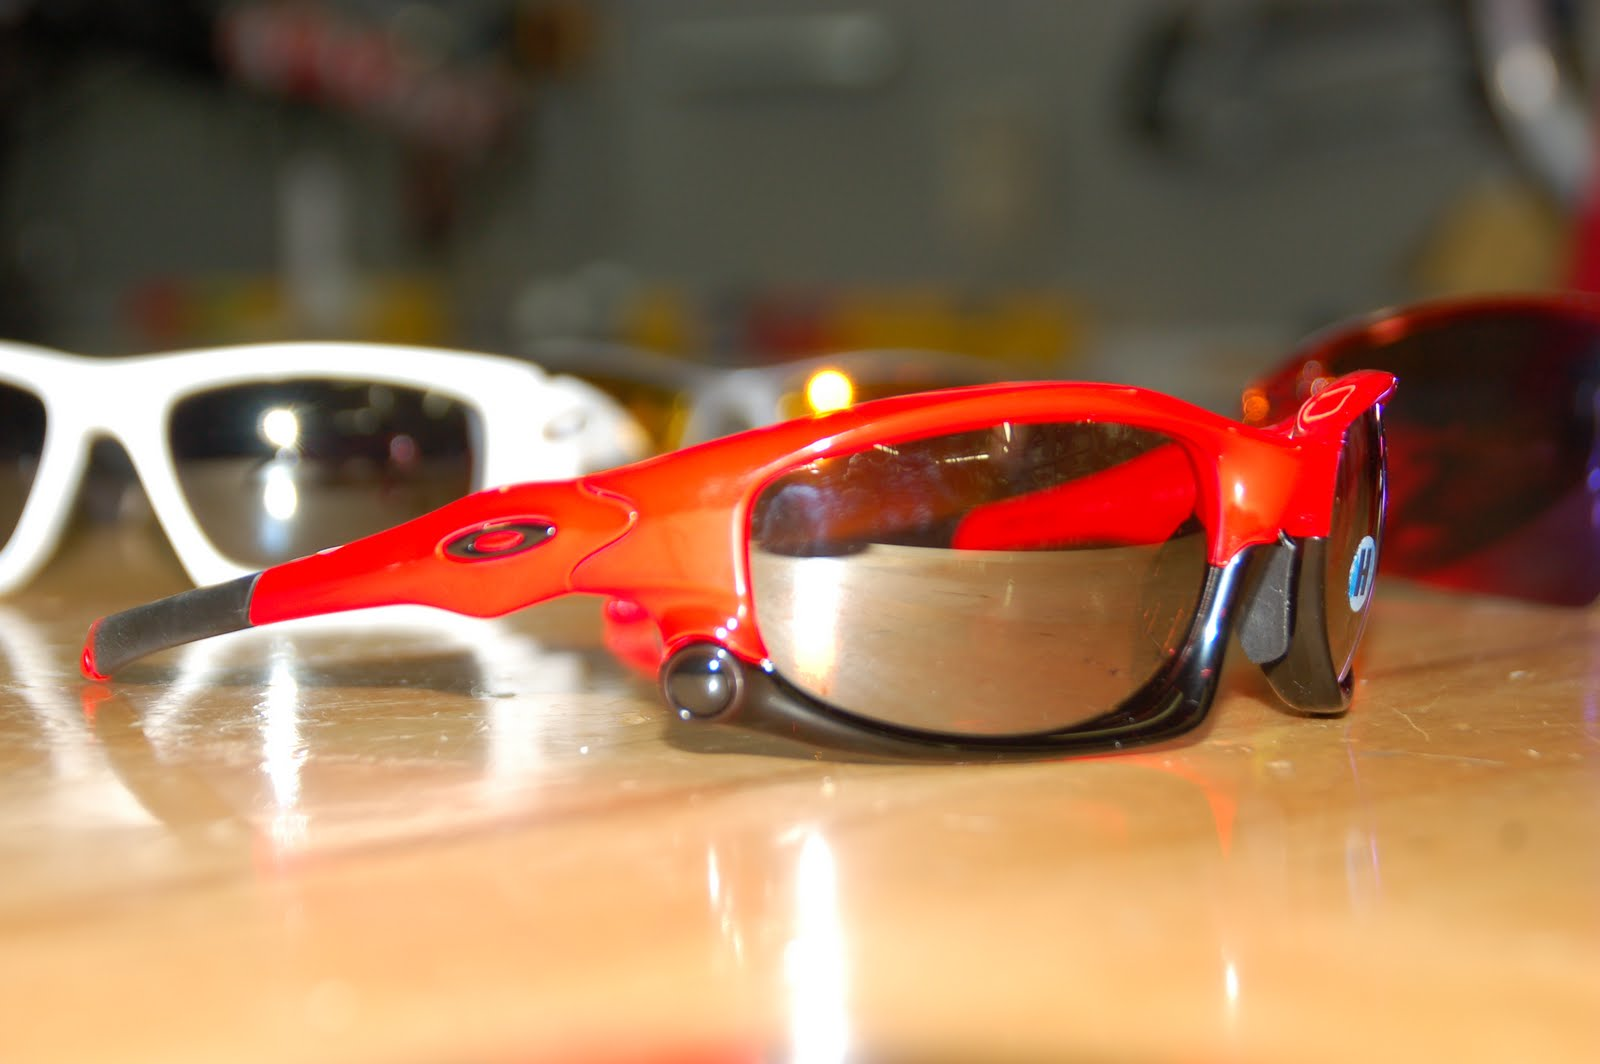 new oakley glasses  Precision Bikes \u2013 New oakley glasses